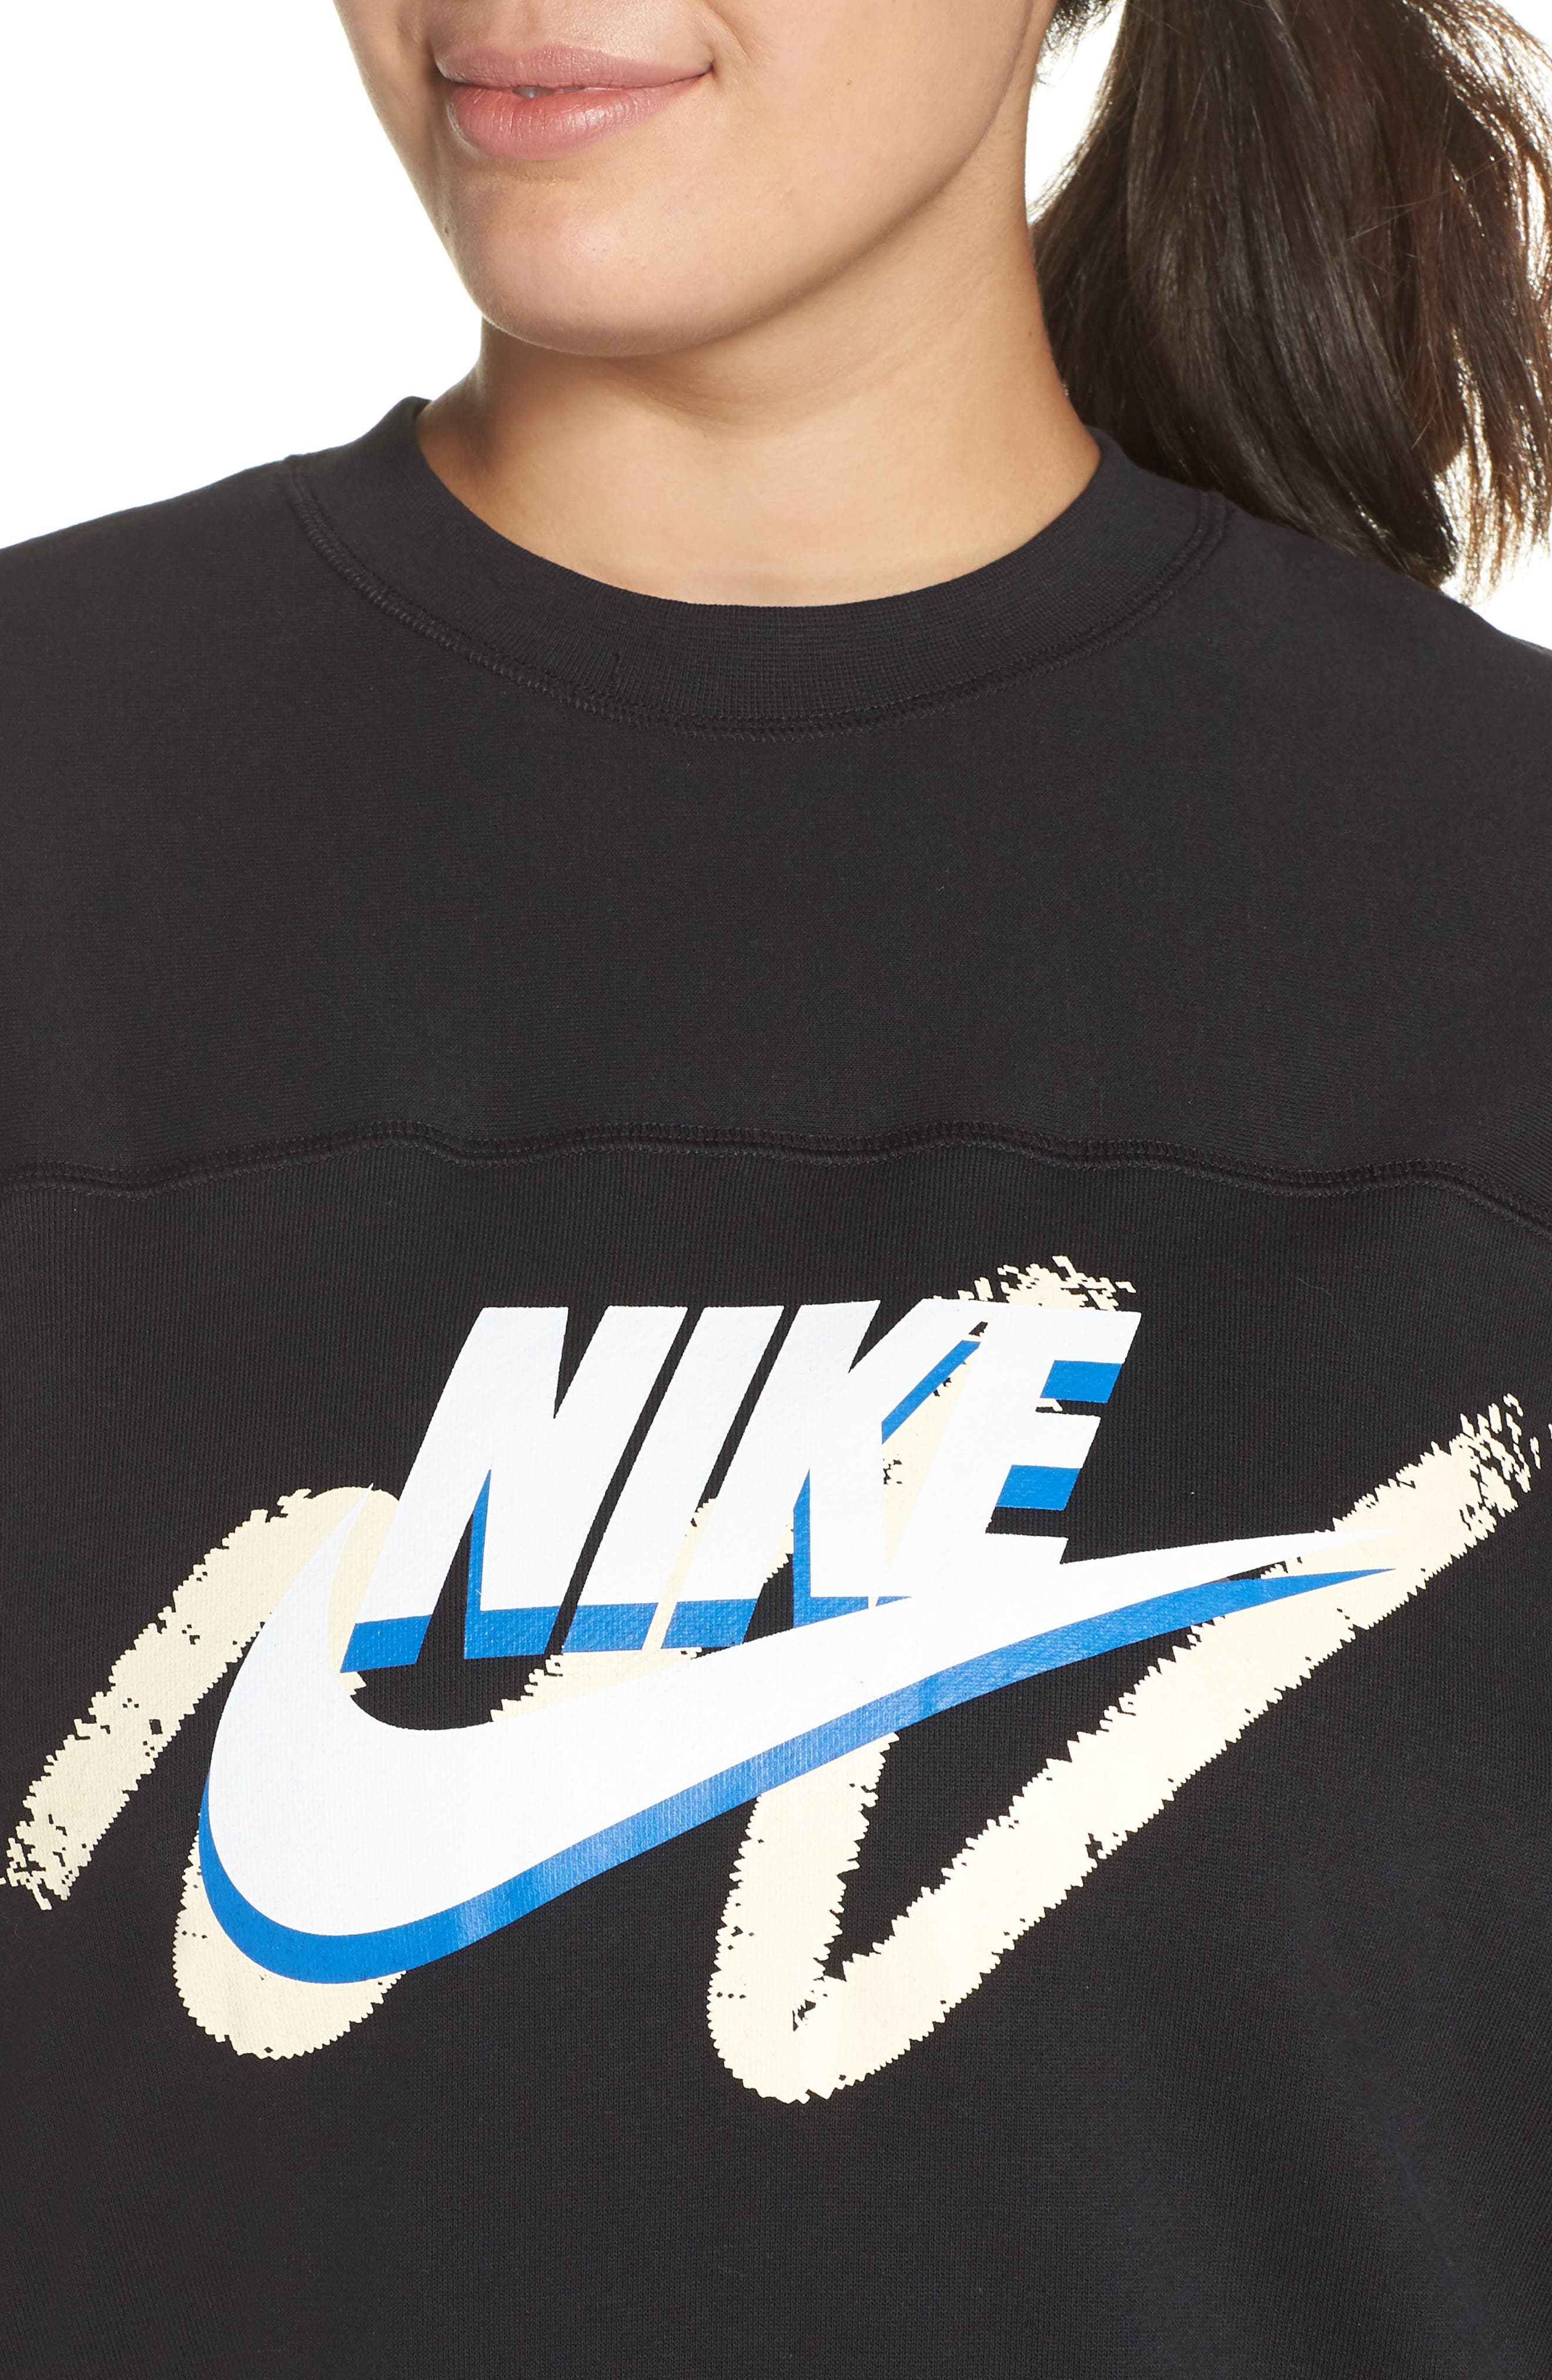 Sportswear Archive Sweatshirt,                             Alternate thumbnail 4, color,                             010